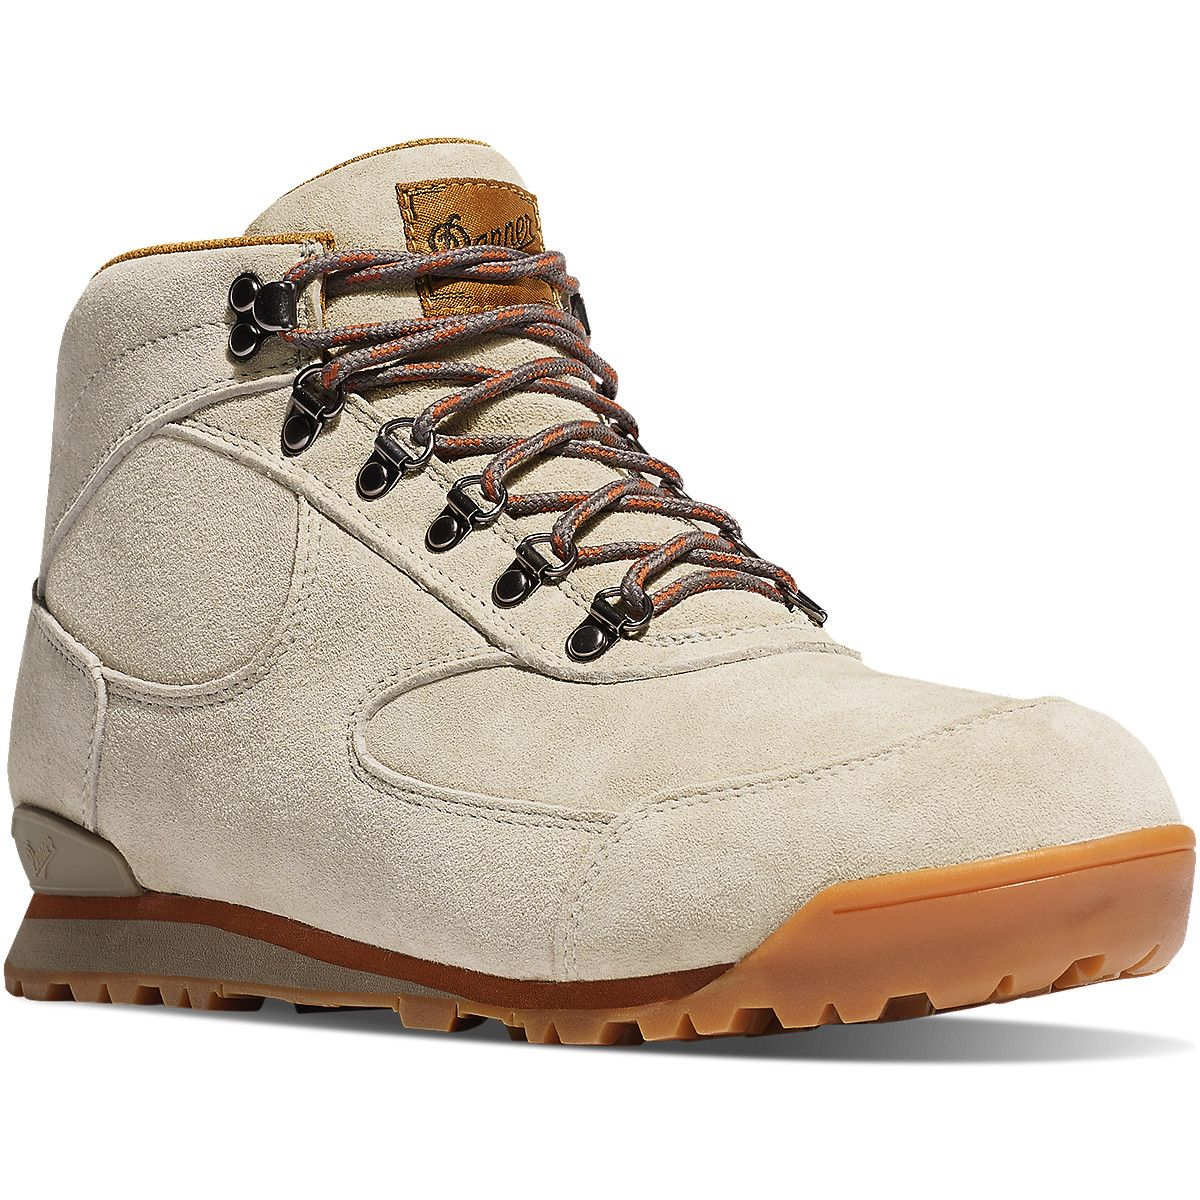 Danner - Jag Oyster Gray - Stumptown - Casual - Product | Shoes ...